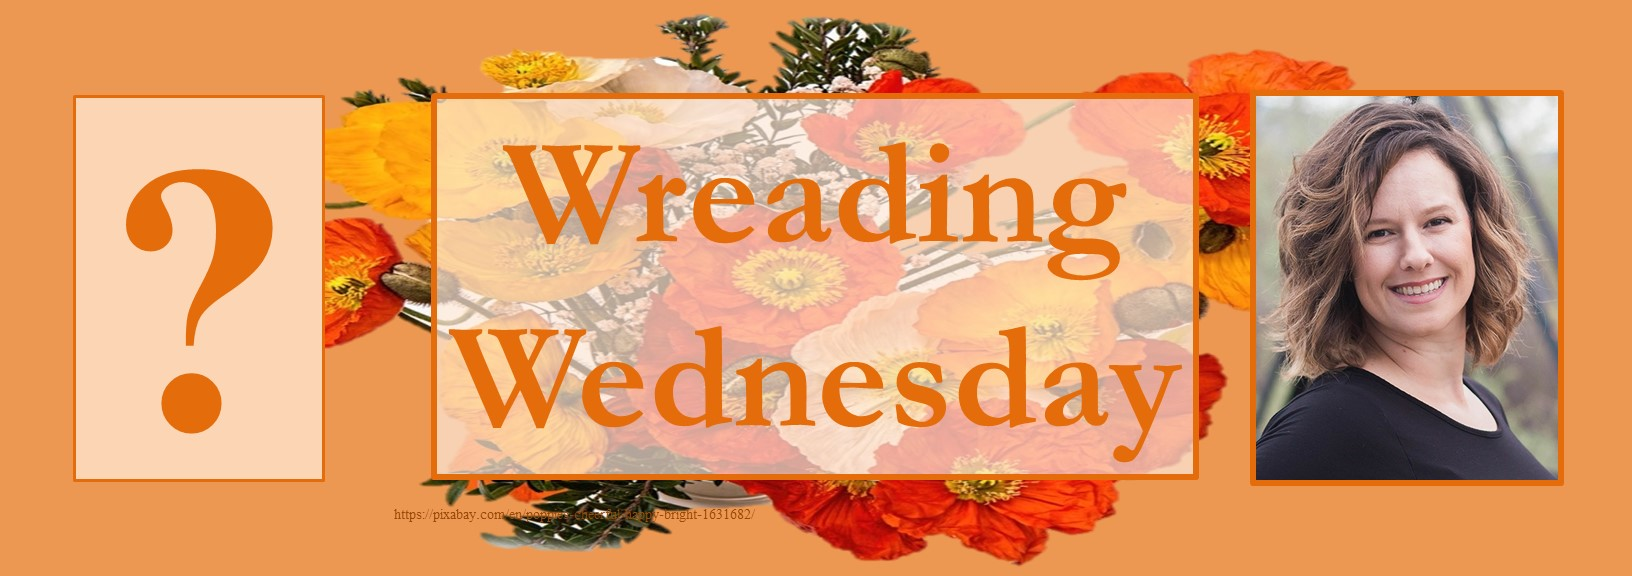 100320 - sing in the sunlight - wreading wednesday - cover reveal banner